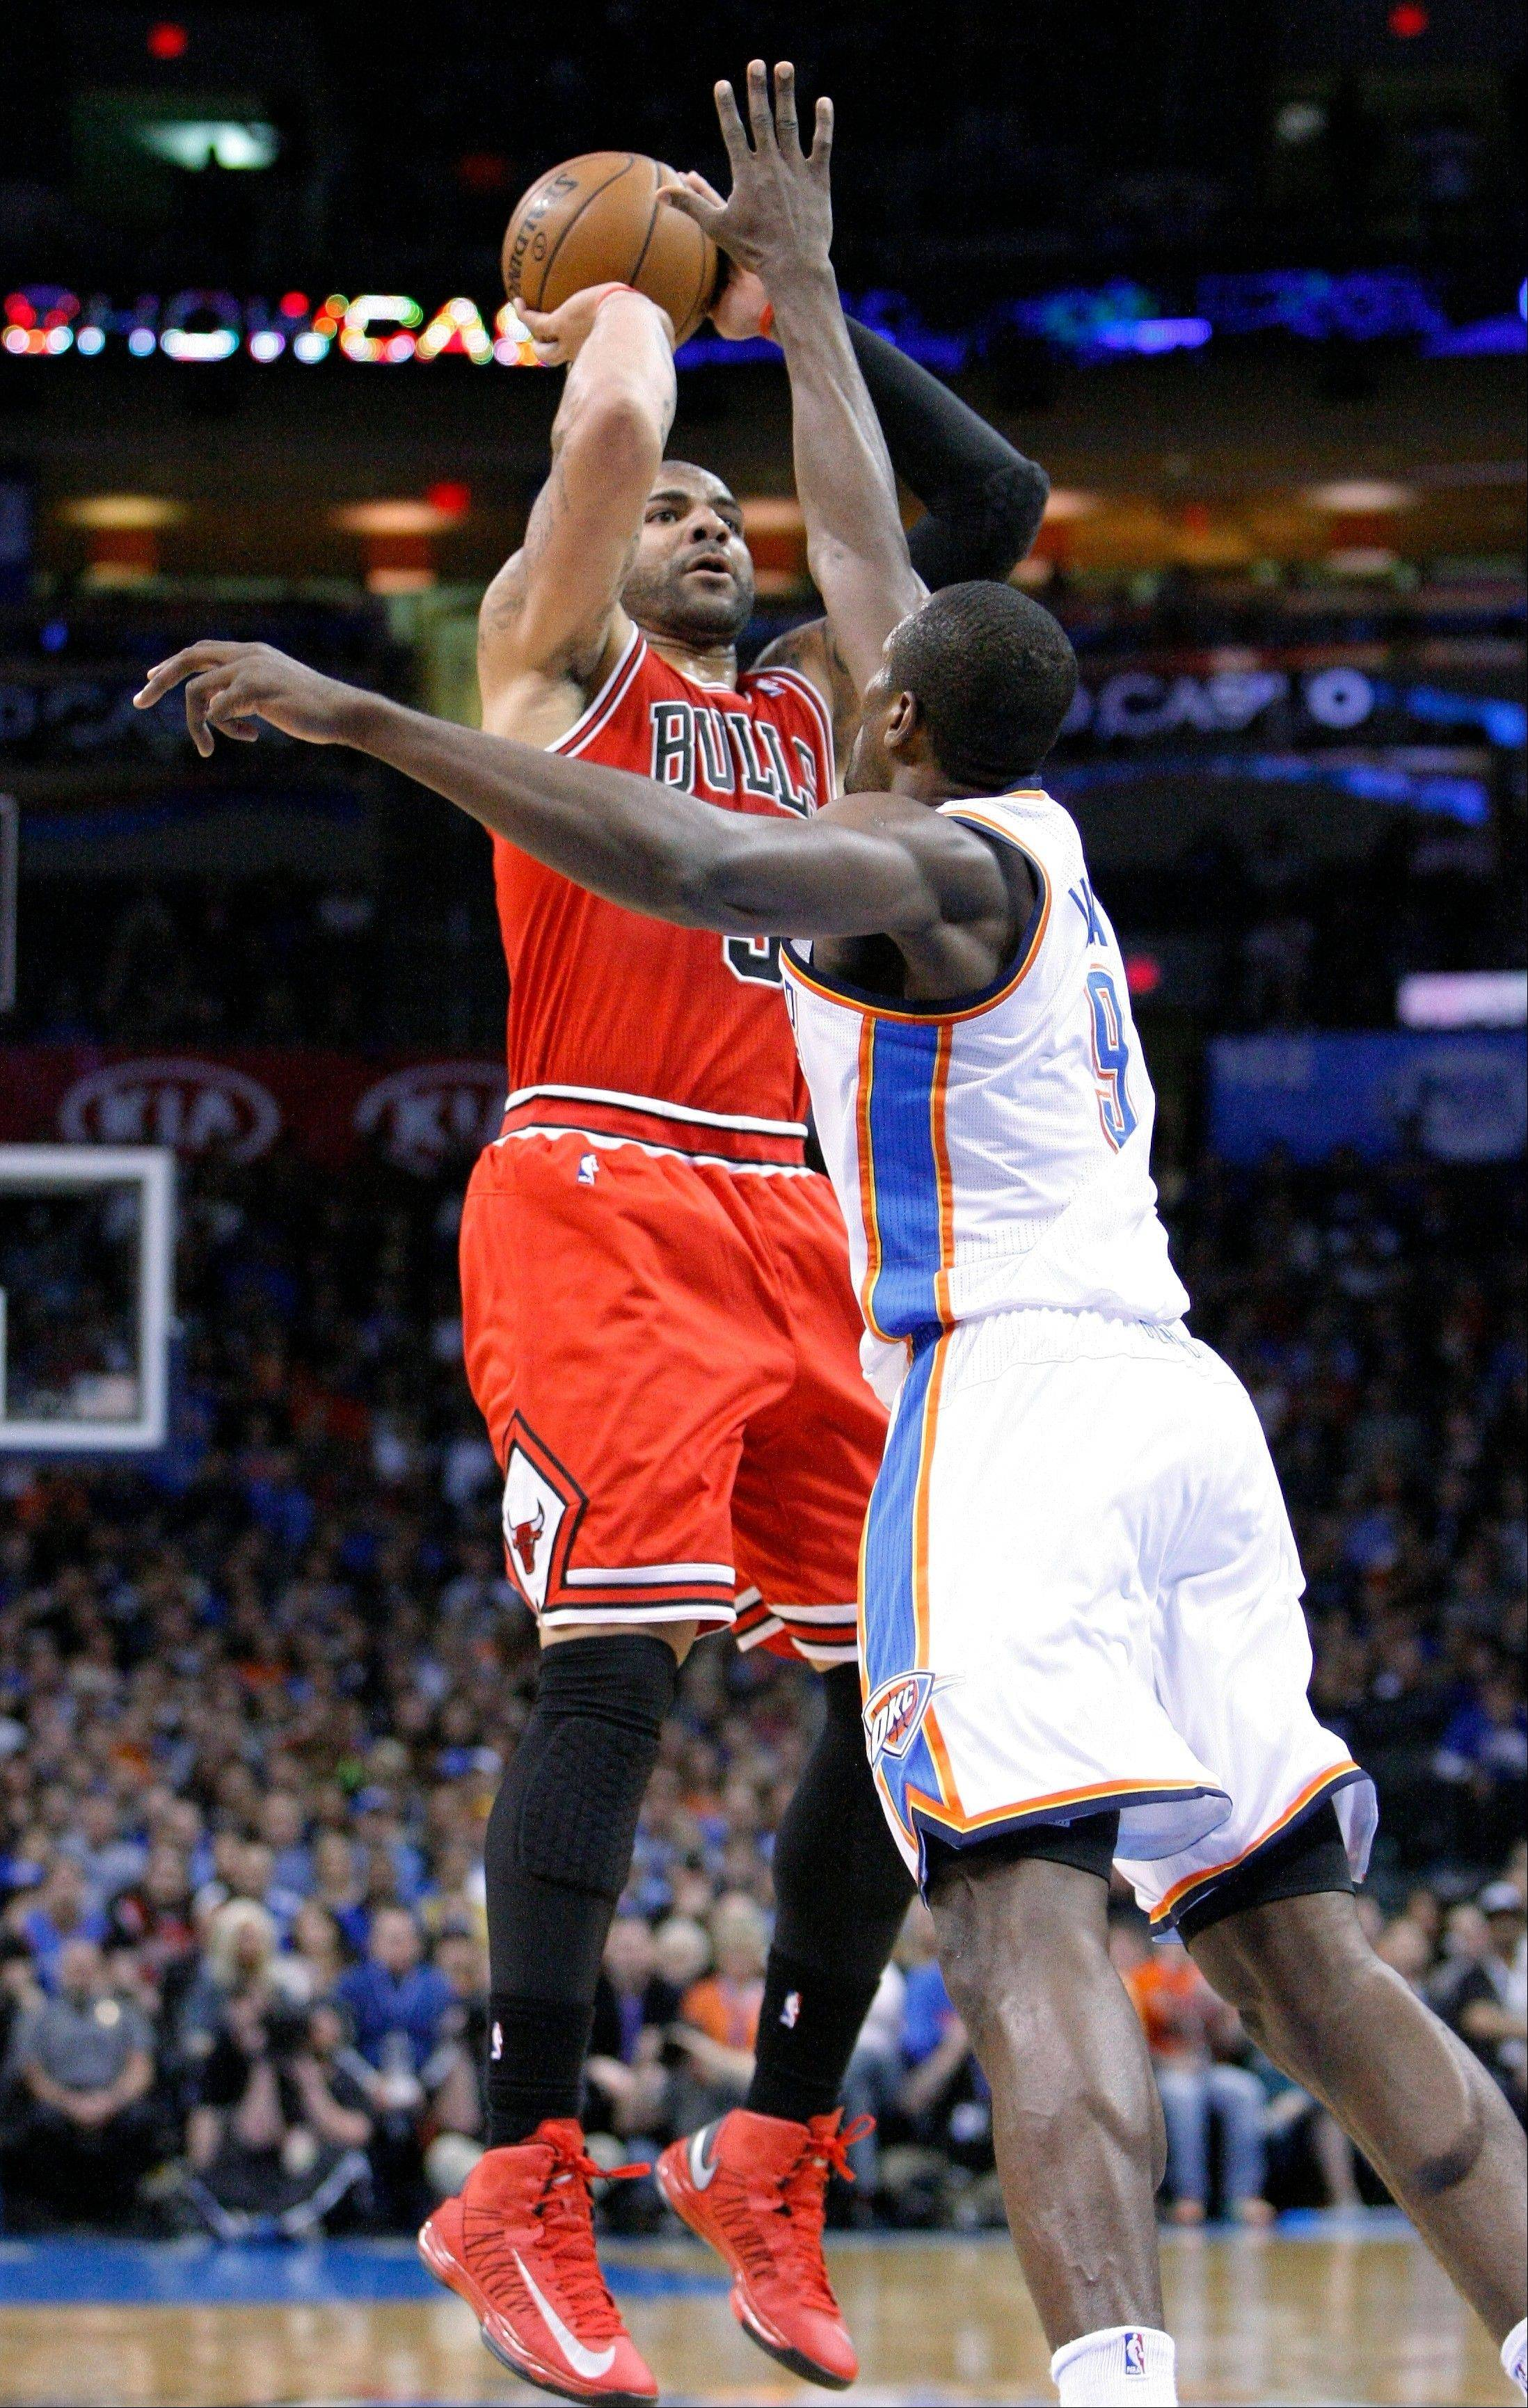 Bulls forward Carlos Boozer shoots over Thunder forward Serge Ibaka during Sunday night's 30-point loss at Oklahoma City.